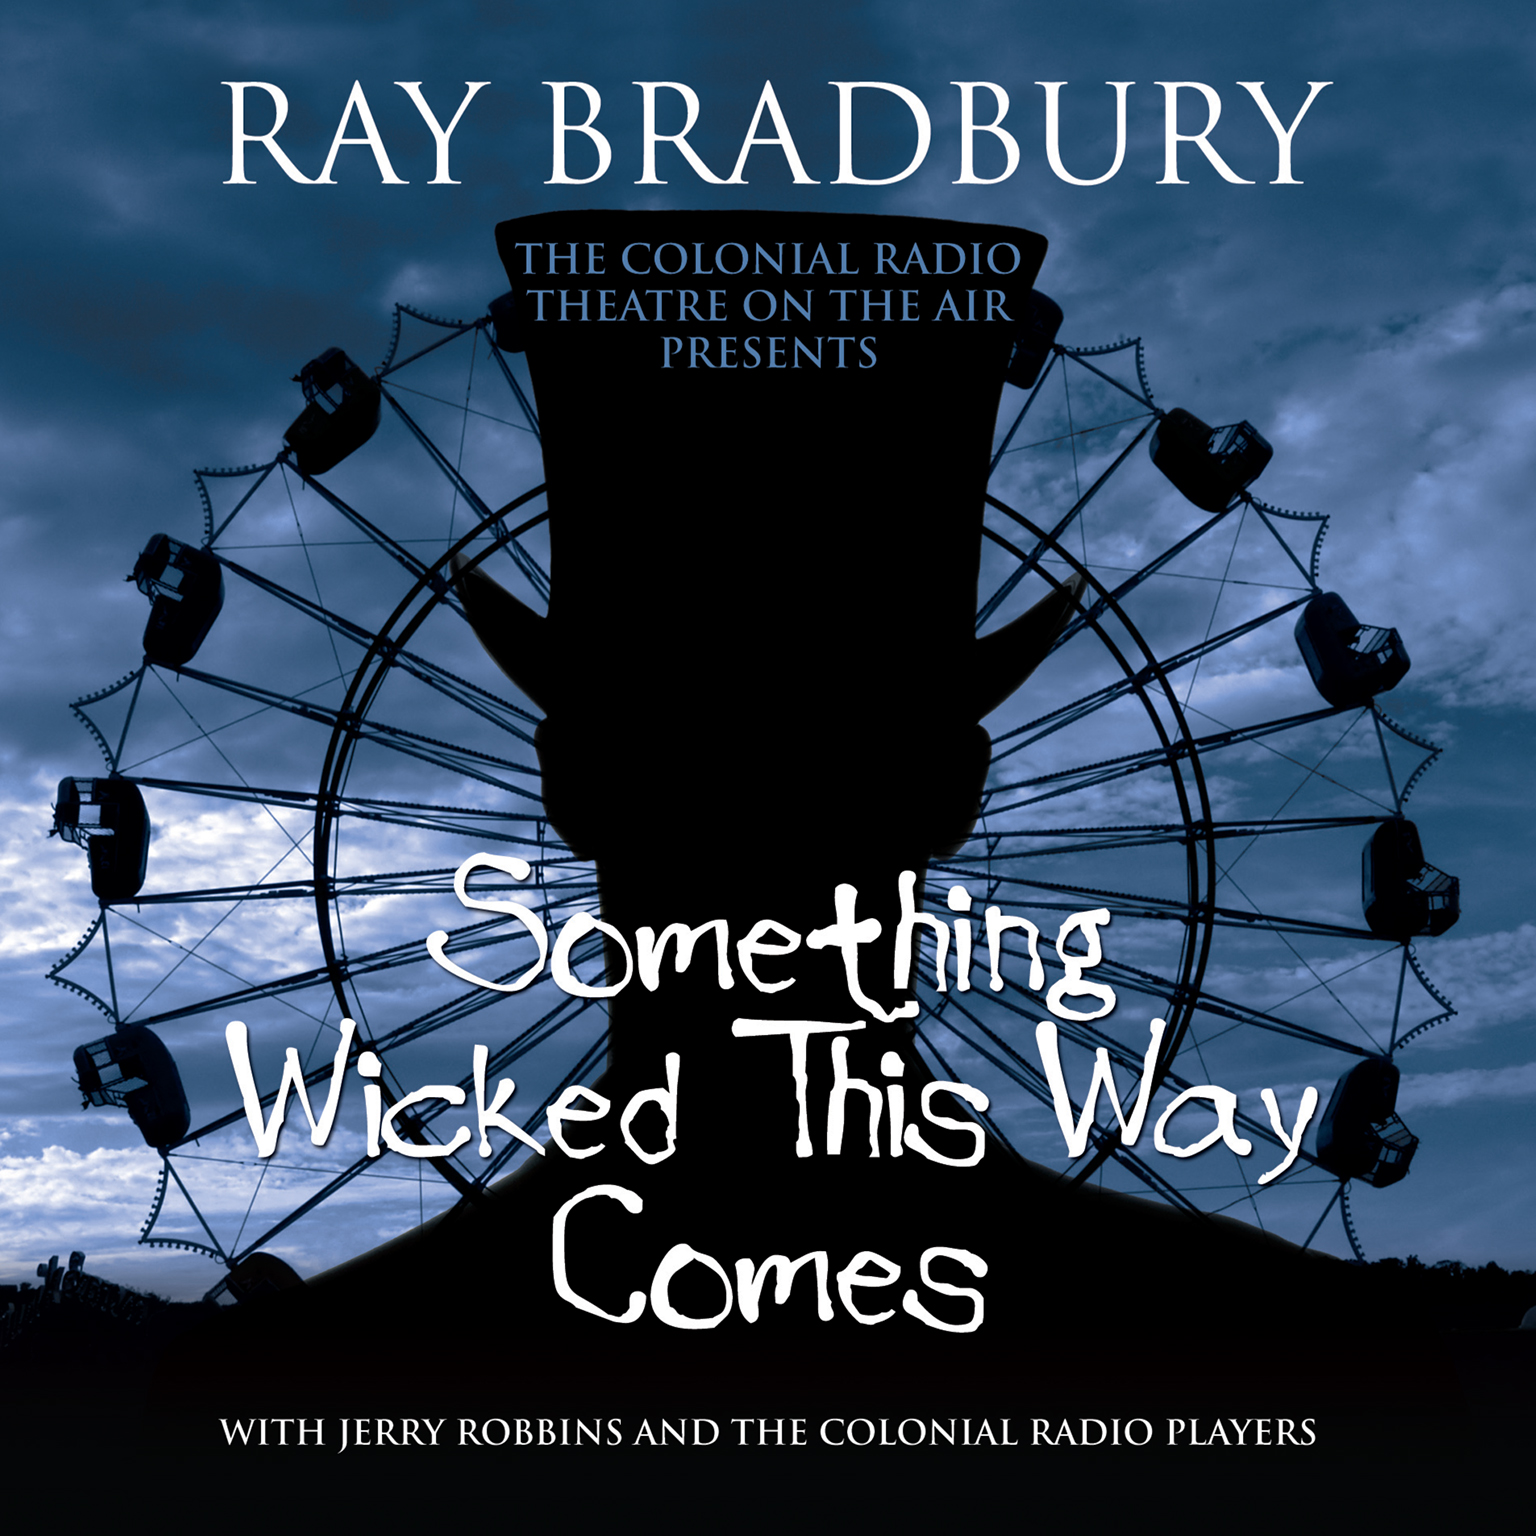 a4ed6a86f9 Something Wicked This Way Comes - Audiobook (audio theater) | Listen ...